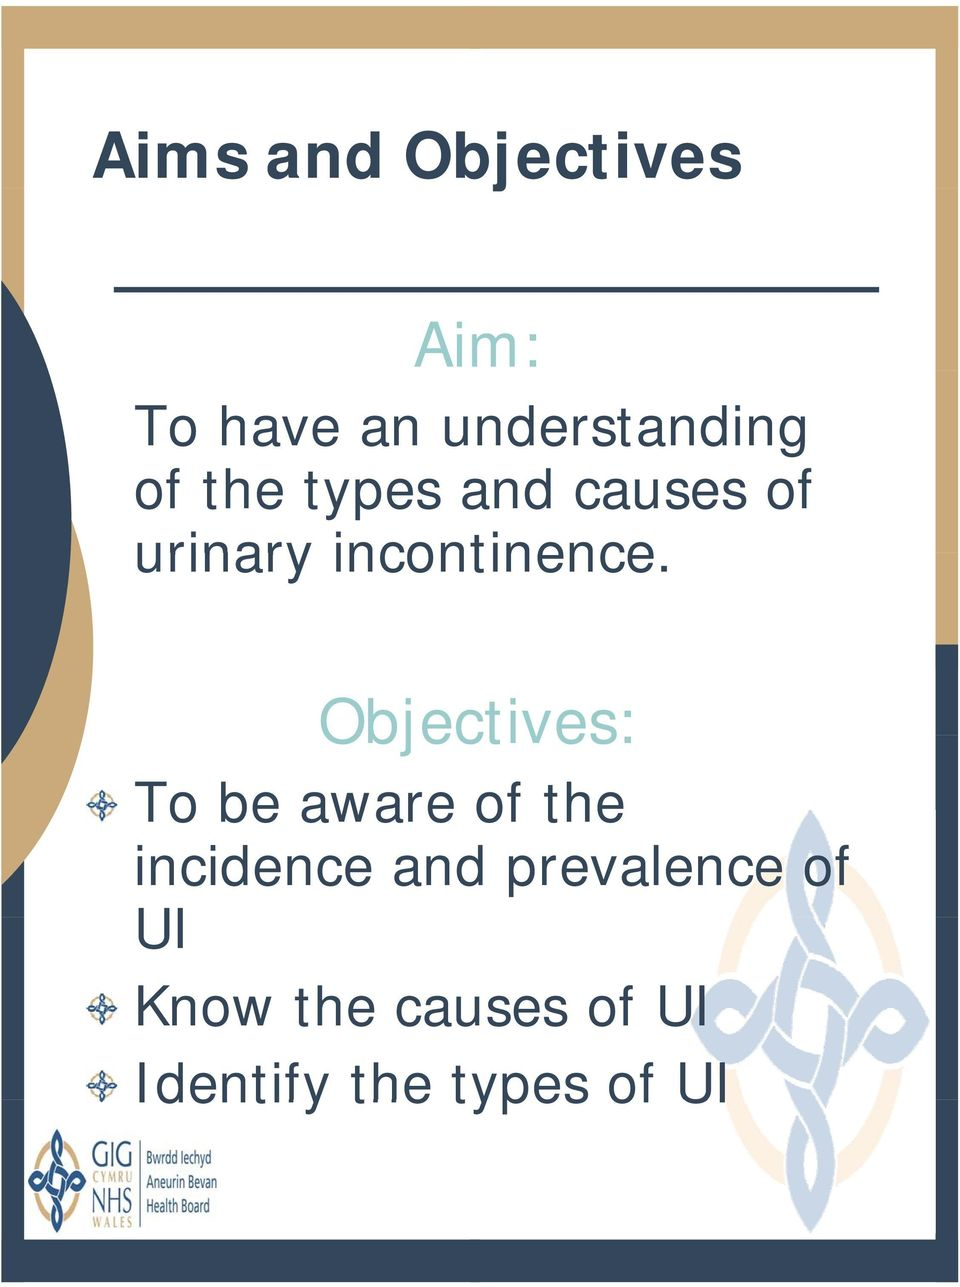 Objectives: To be aware of the incidence and